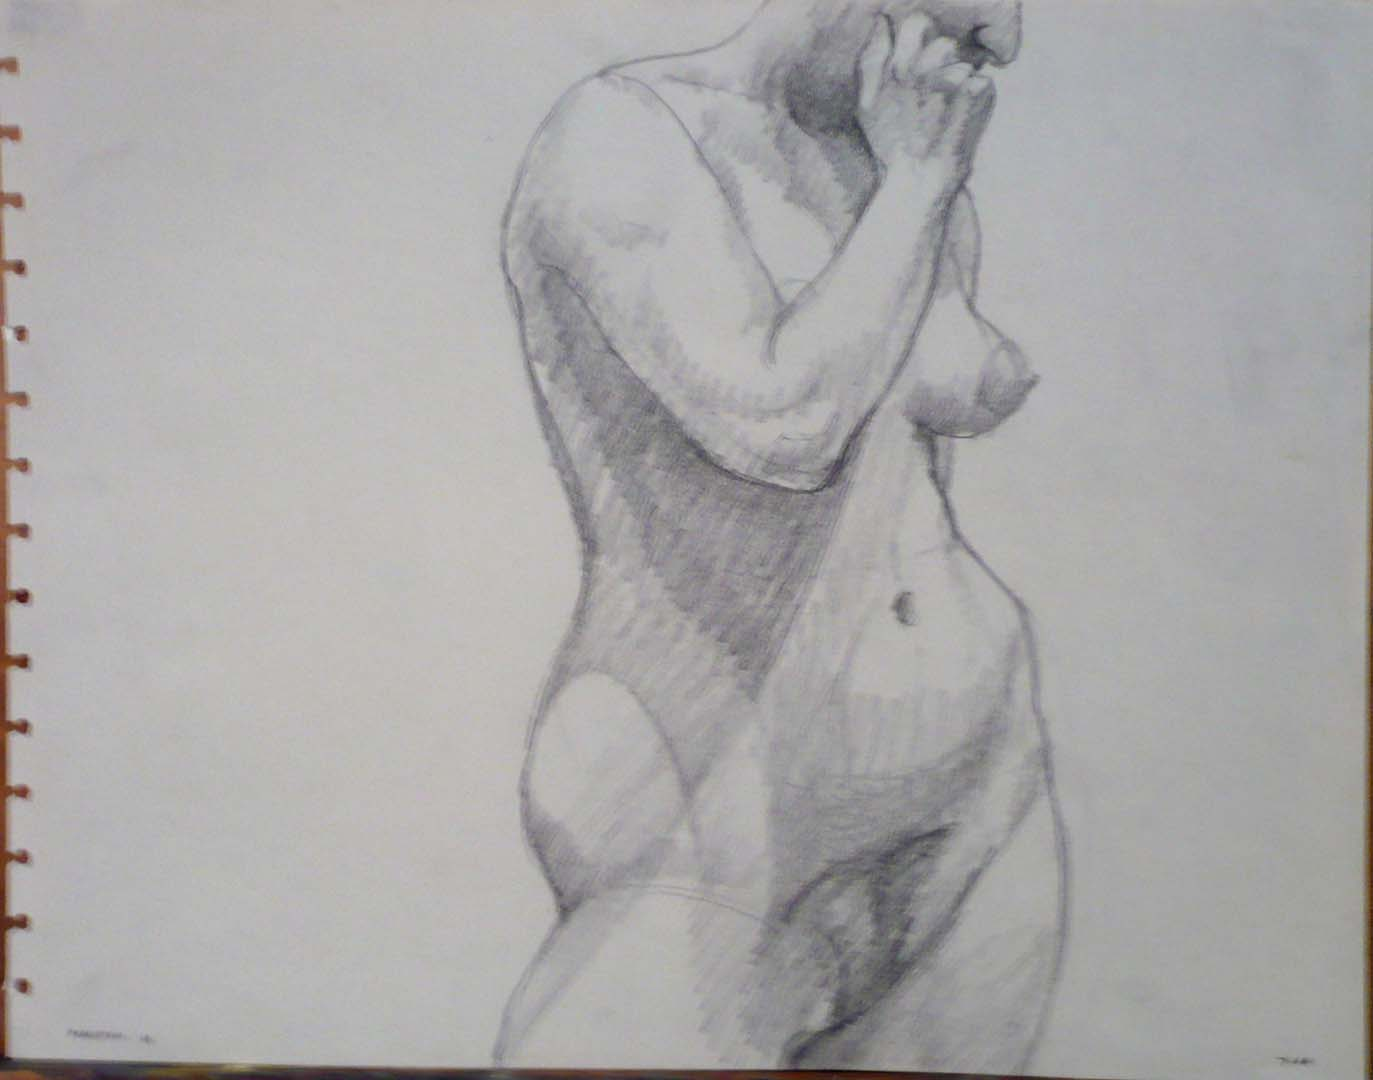 1963 Standing Female Model with Hand on Face Pencil 10.75 x 13.75